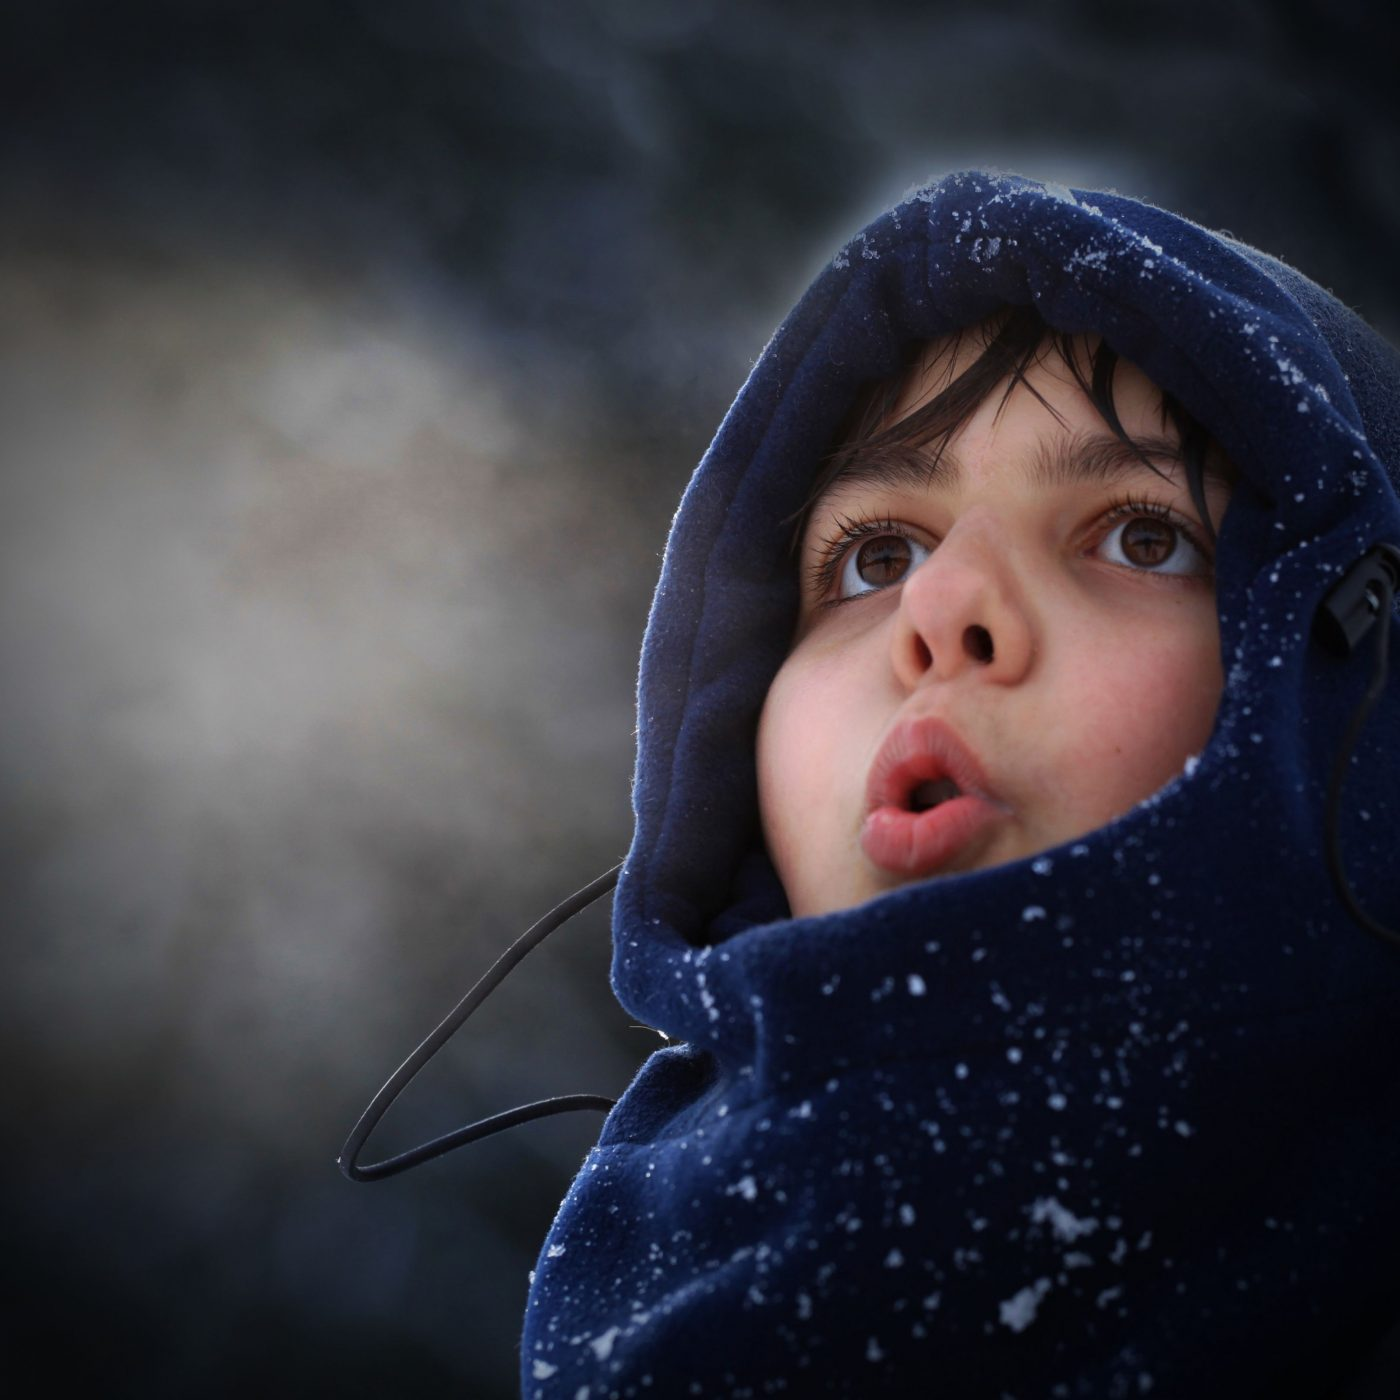 AsthmaNC - Asthma Tips for Winter Weather